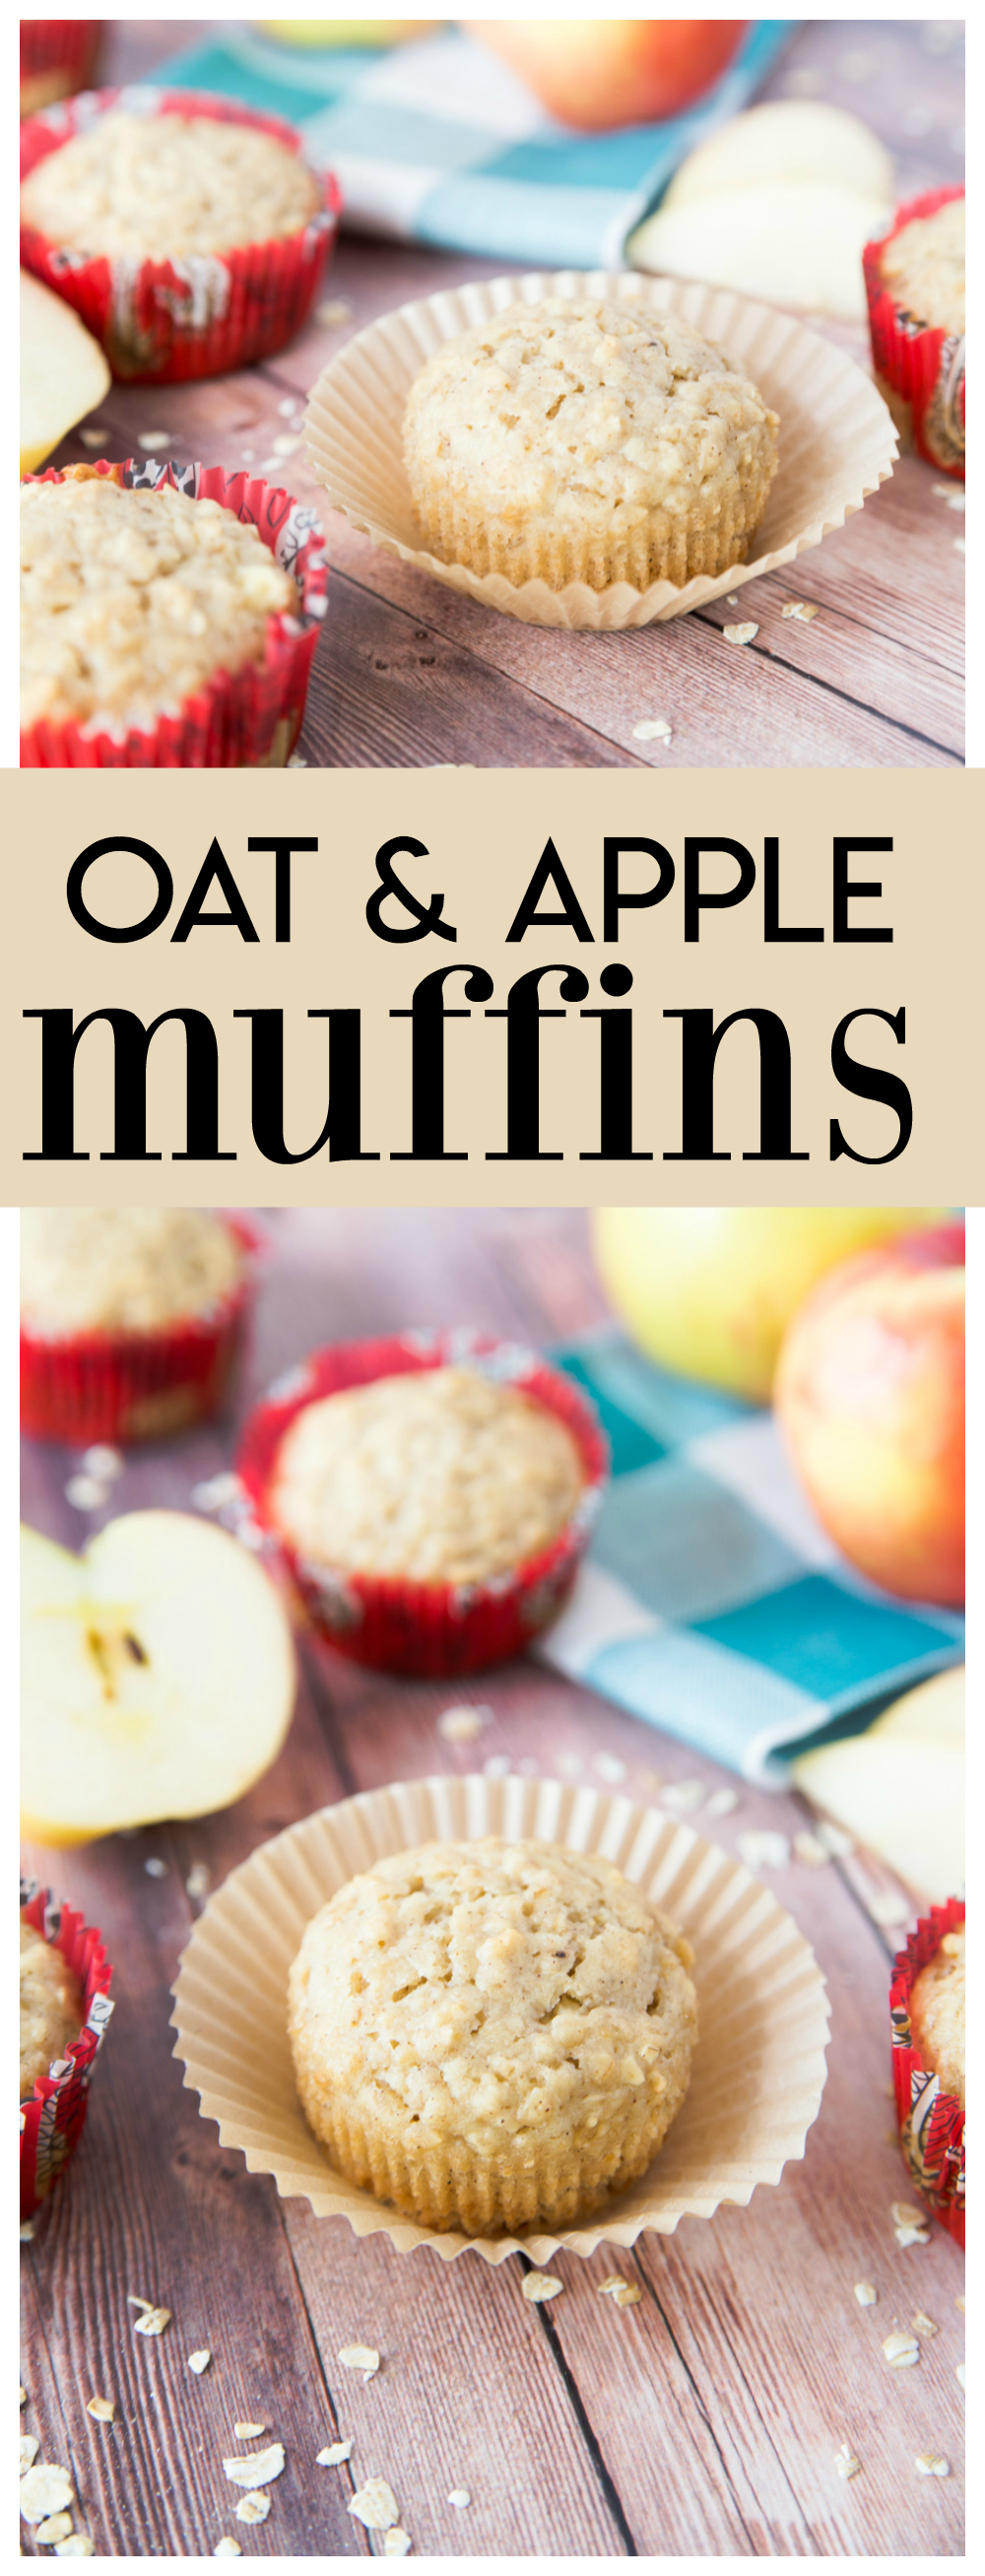 These Oat & Apple Muffins are the perfect breakfast muffin.  They have a touch of sweetness from the honey and apples and a hint of fall with the cinnamon spice.